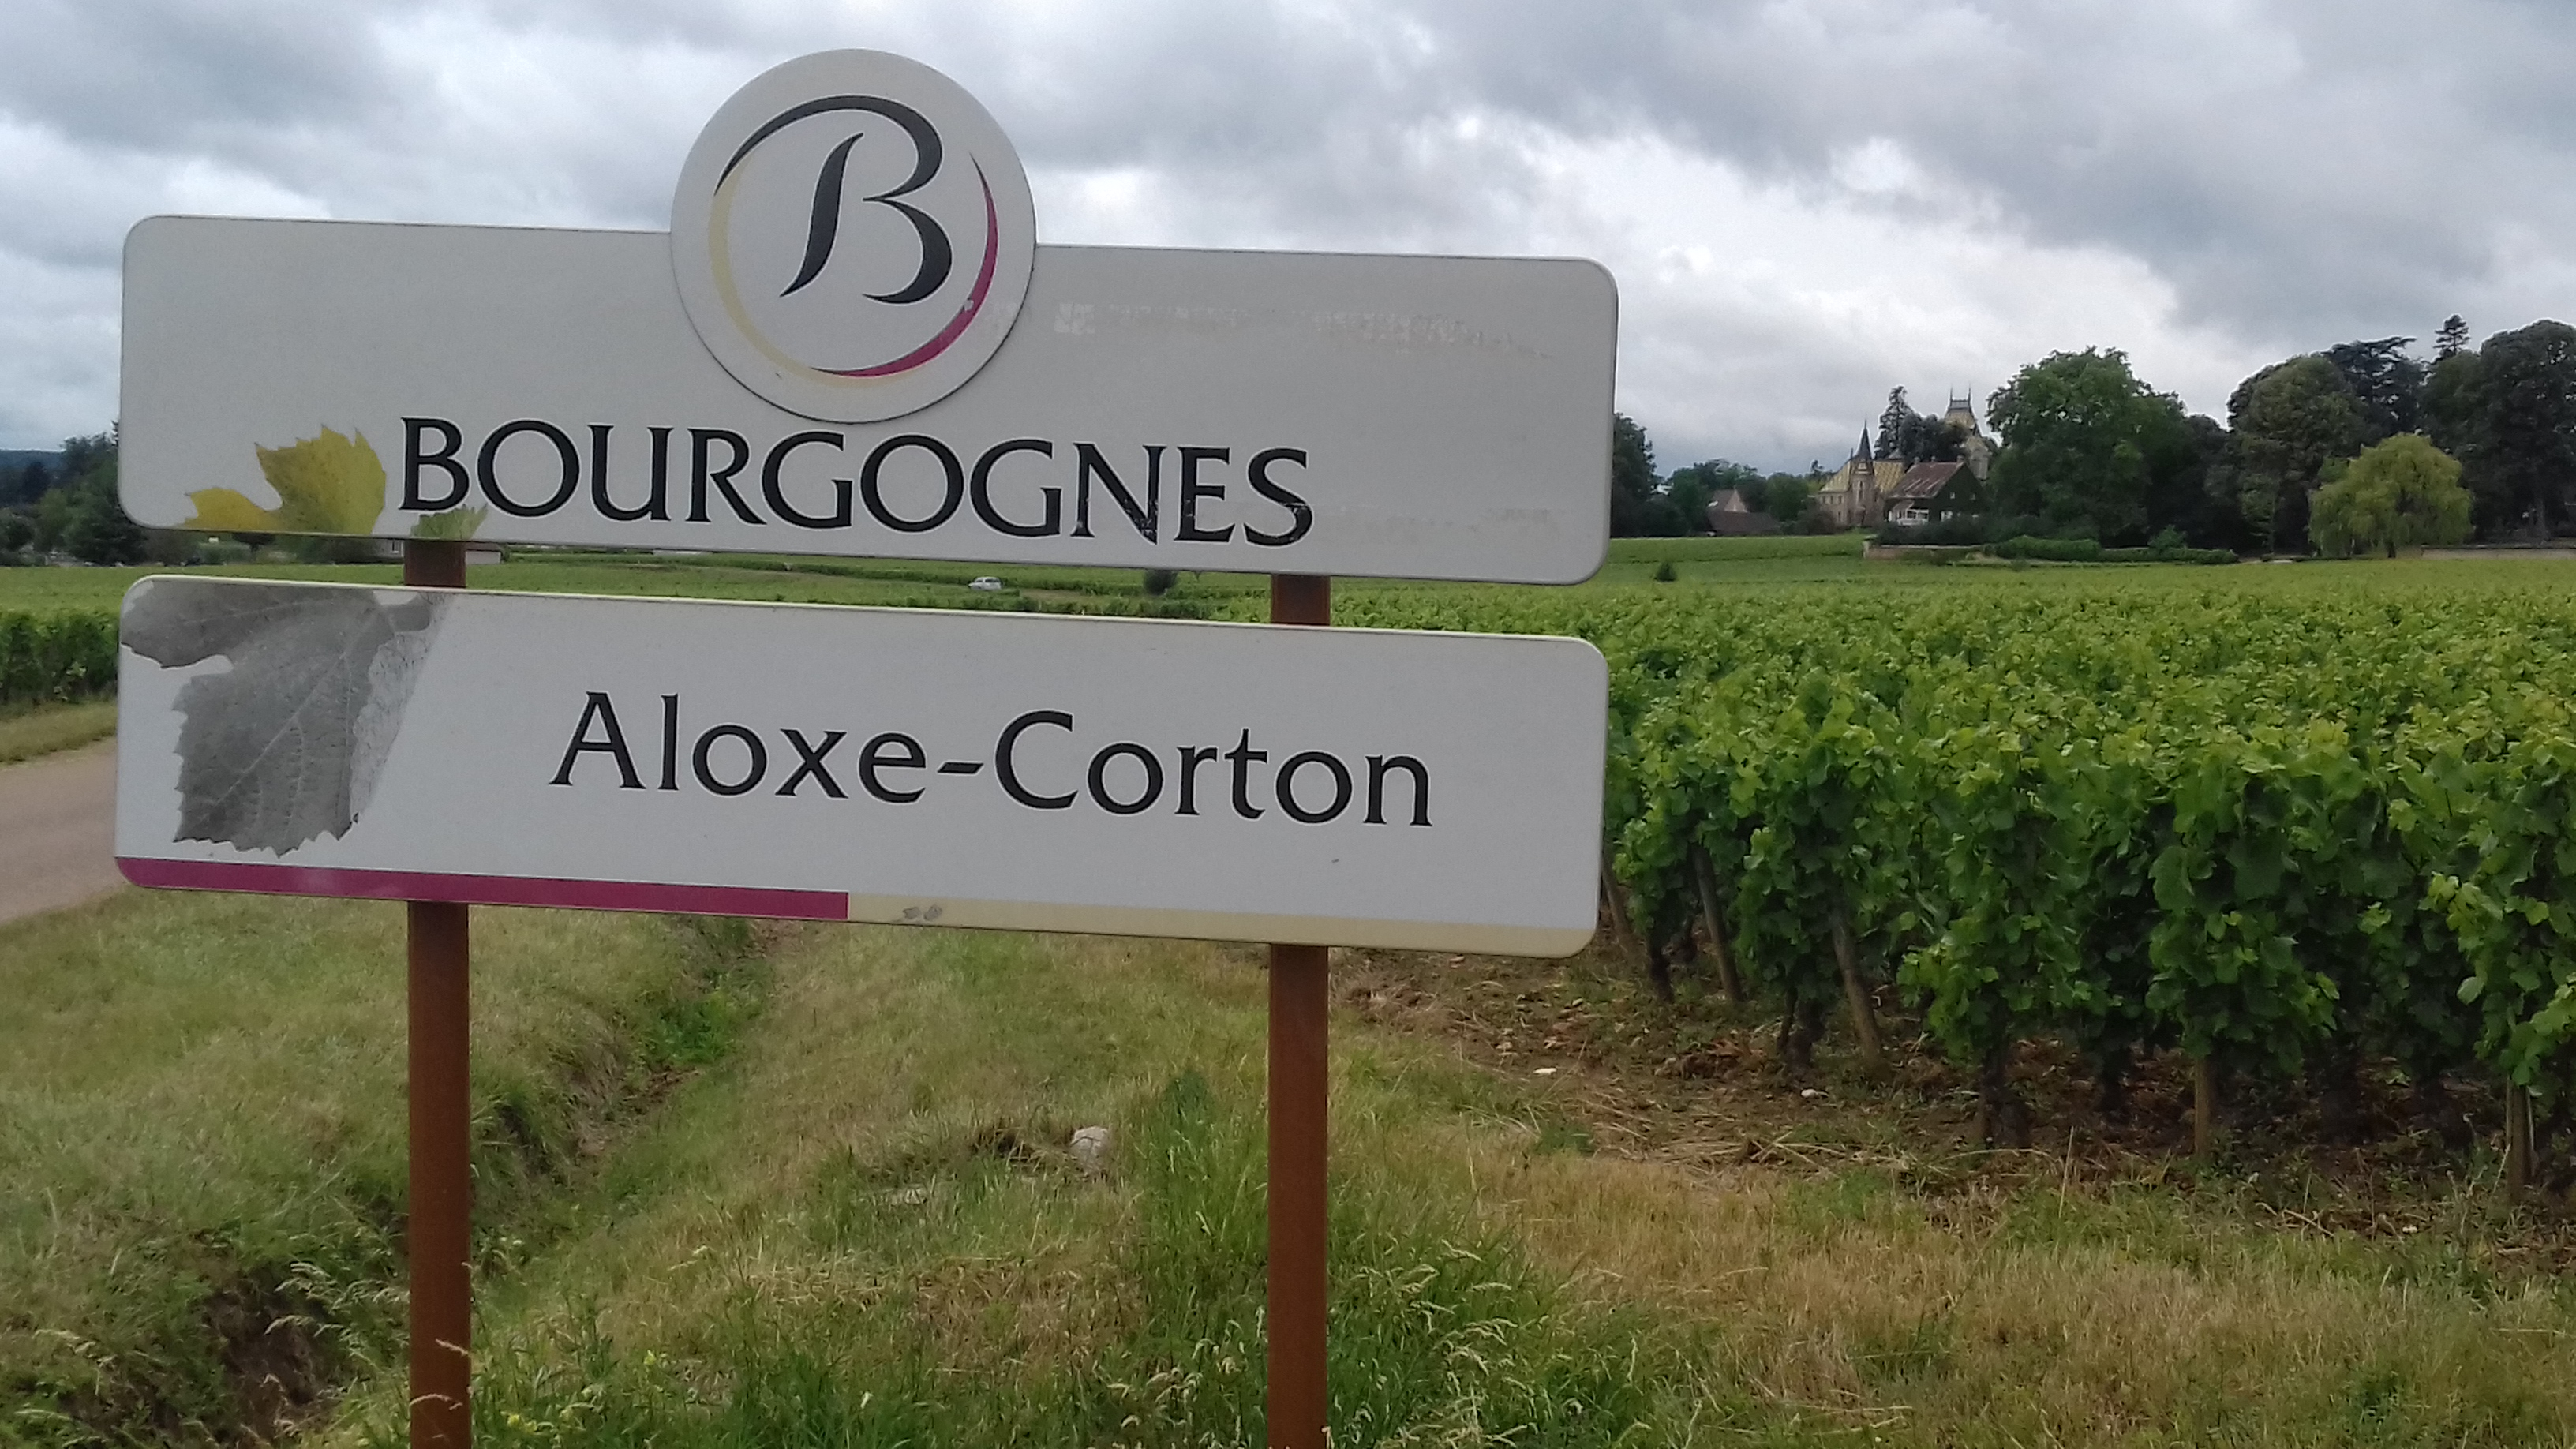 sign of burgundy region by the side of the road